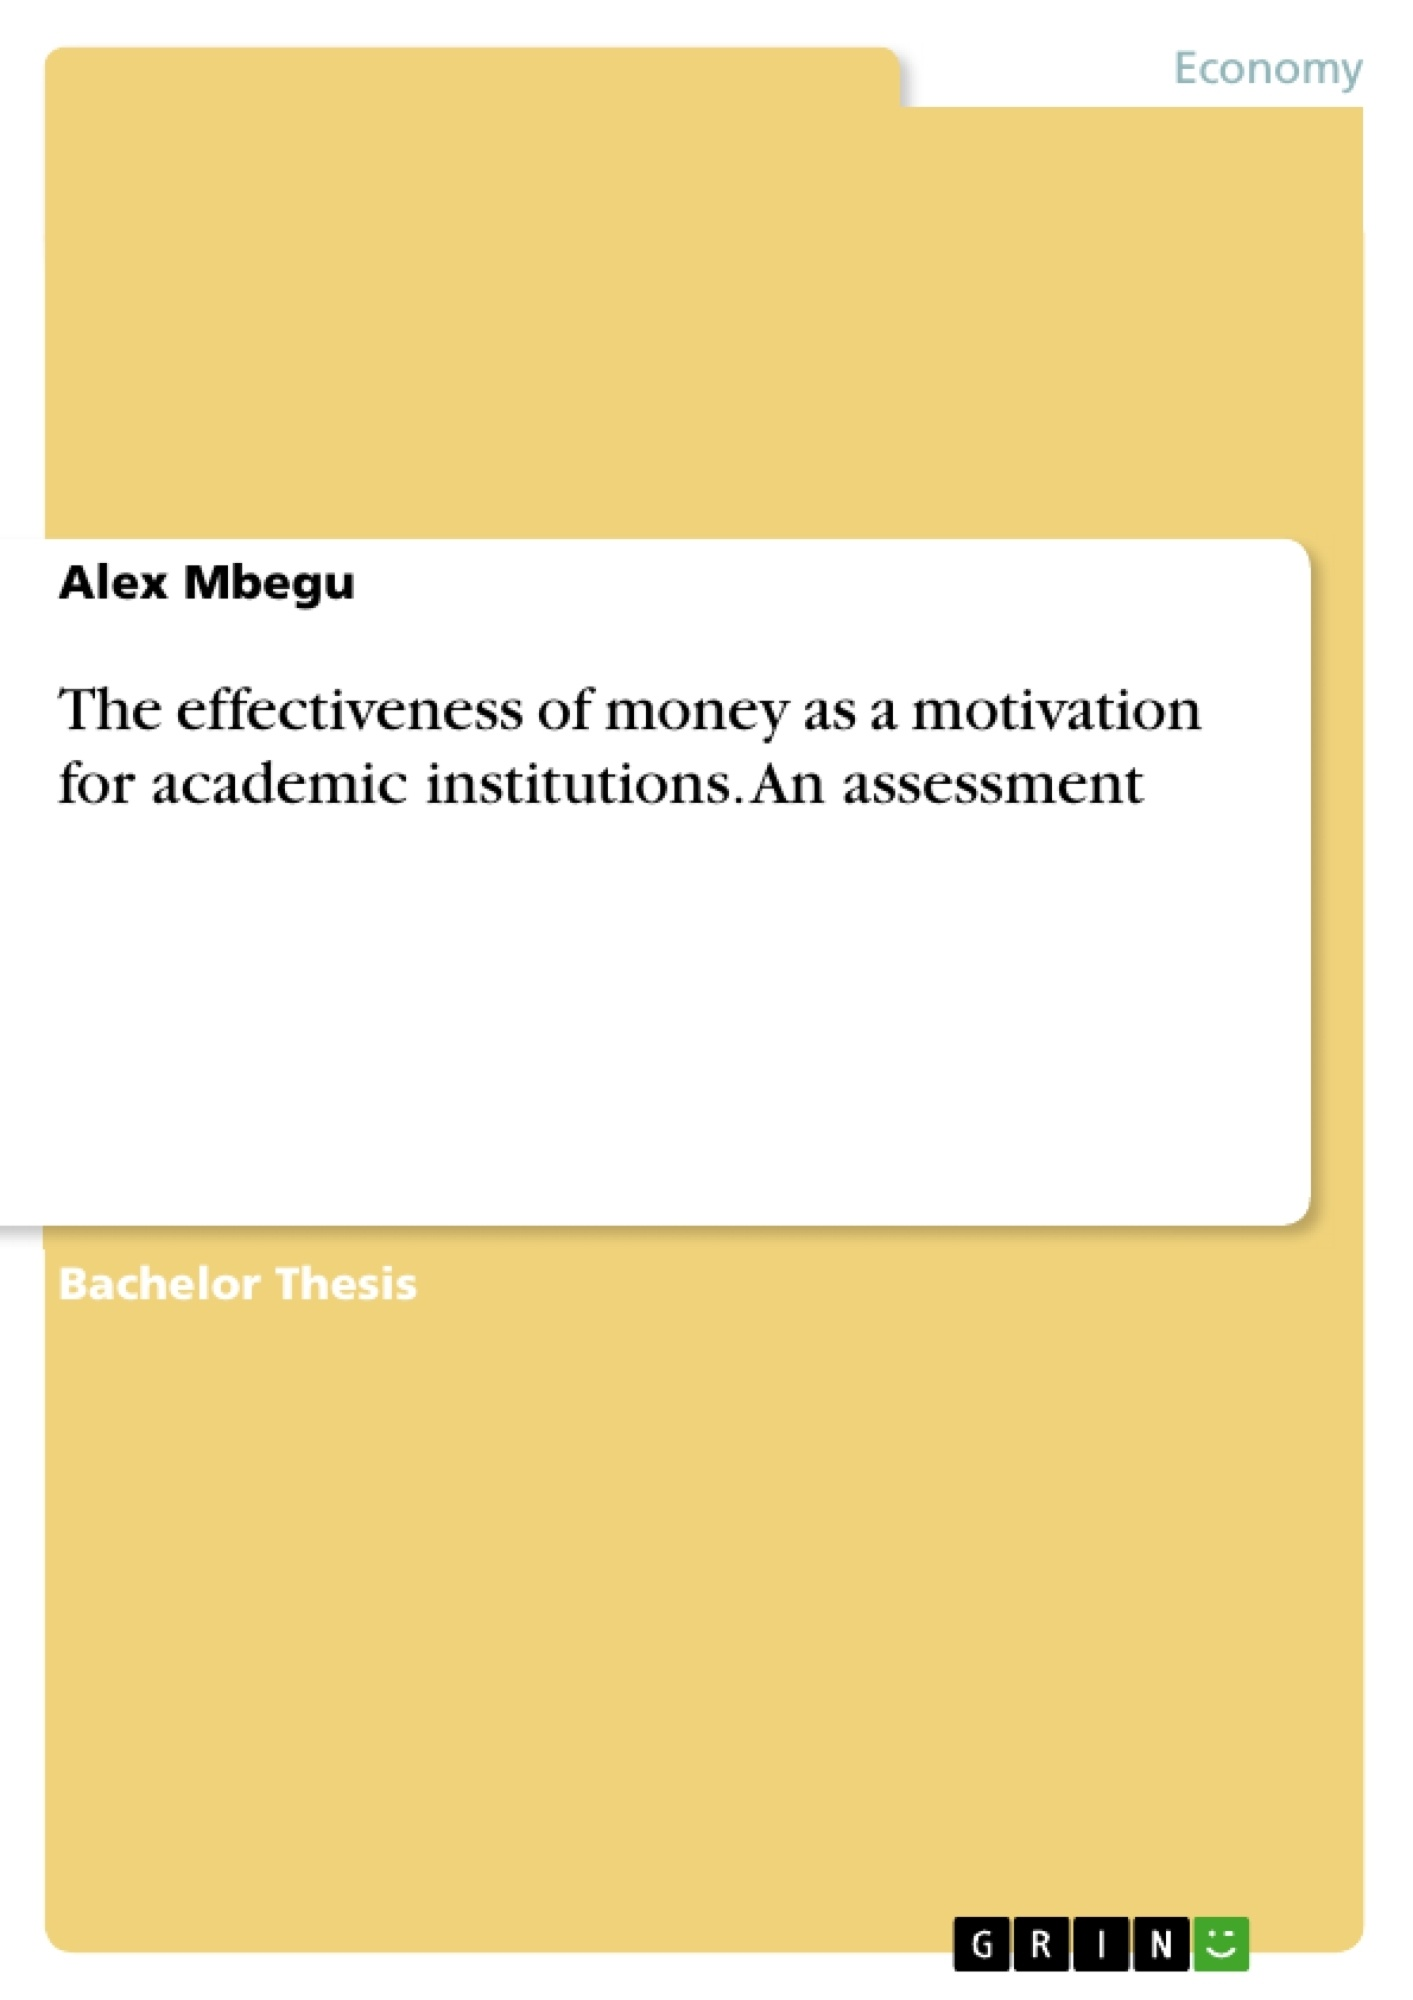 Title: The effectiveness of money as a motivation for academic institutions. An assessment